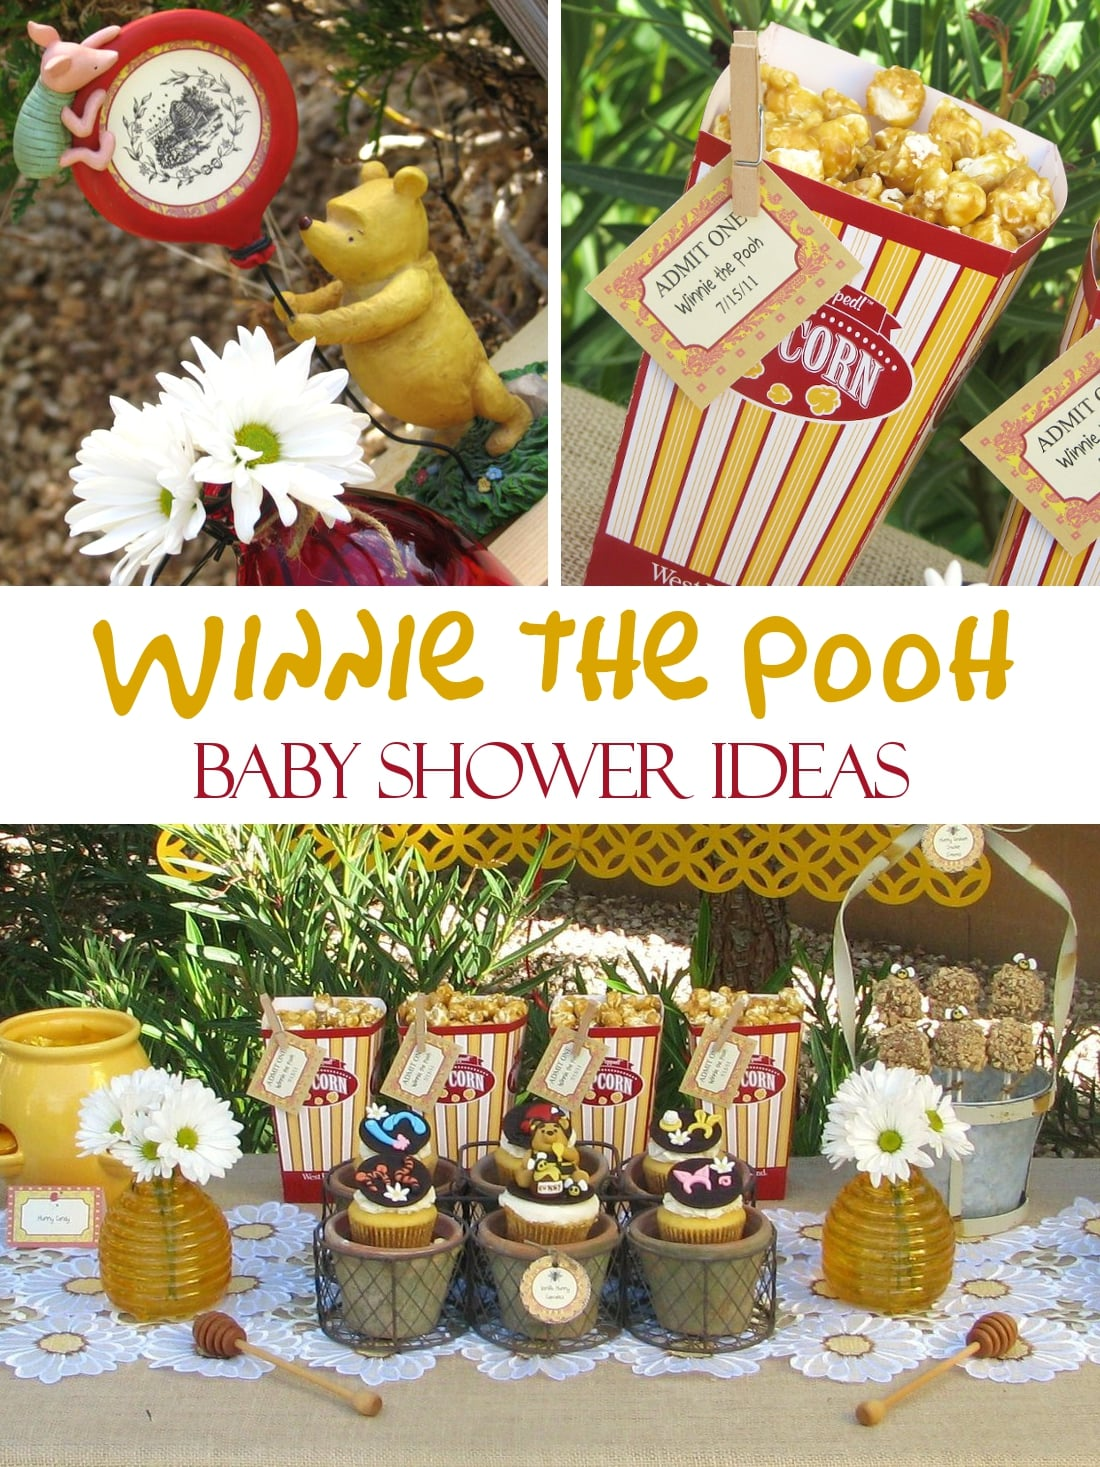 winnie the pooh baby shower ideas games food favors decorations